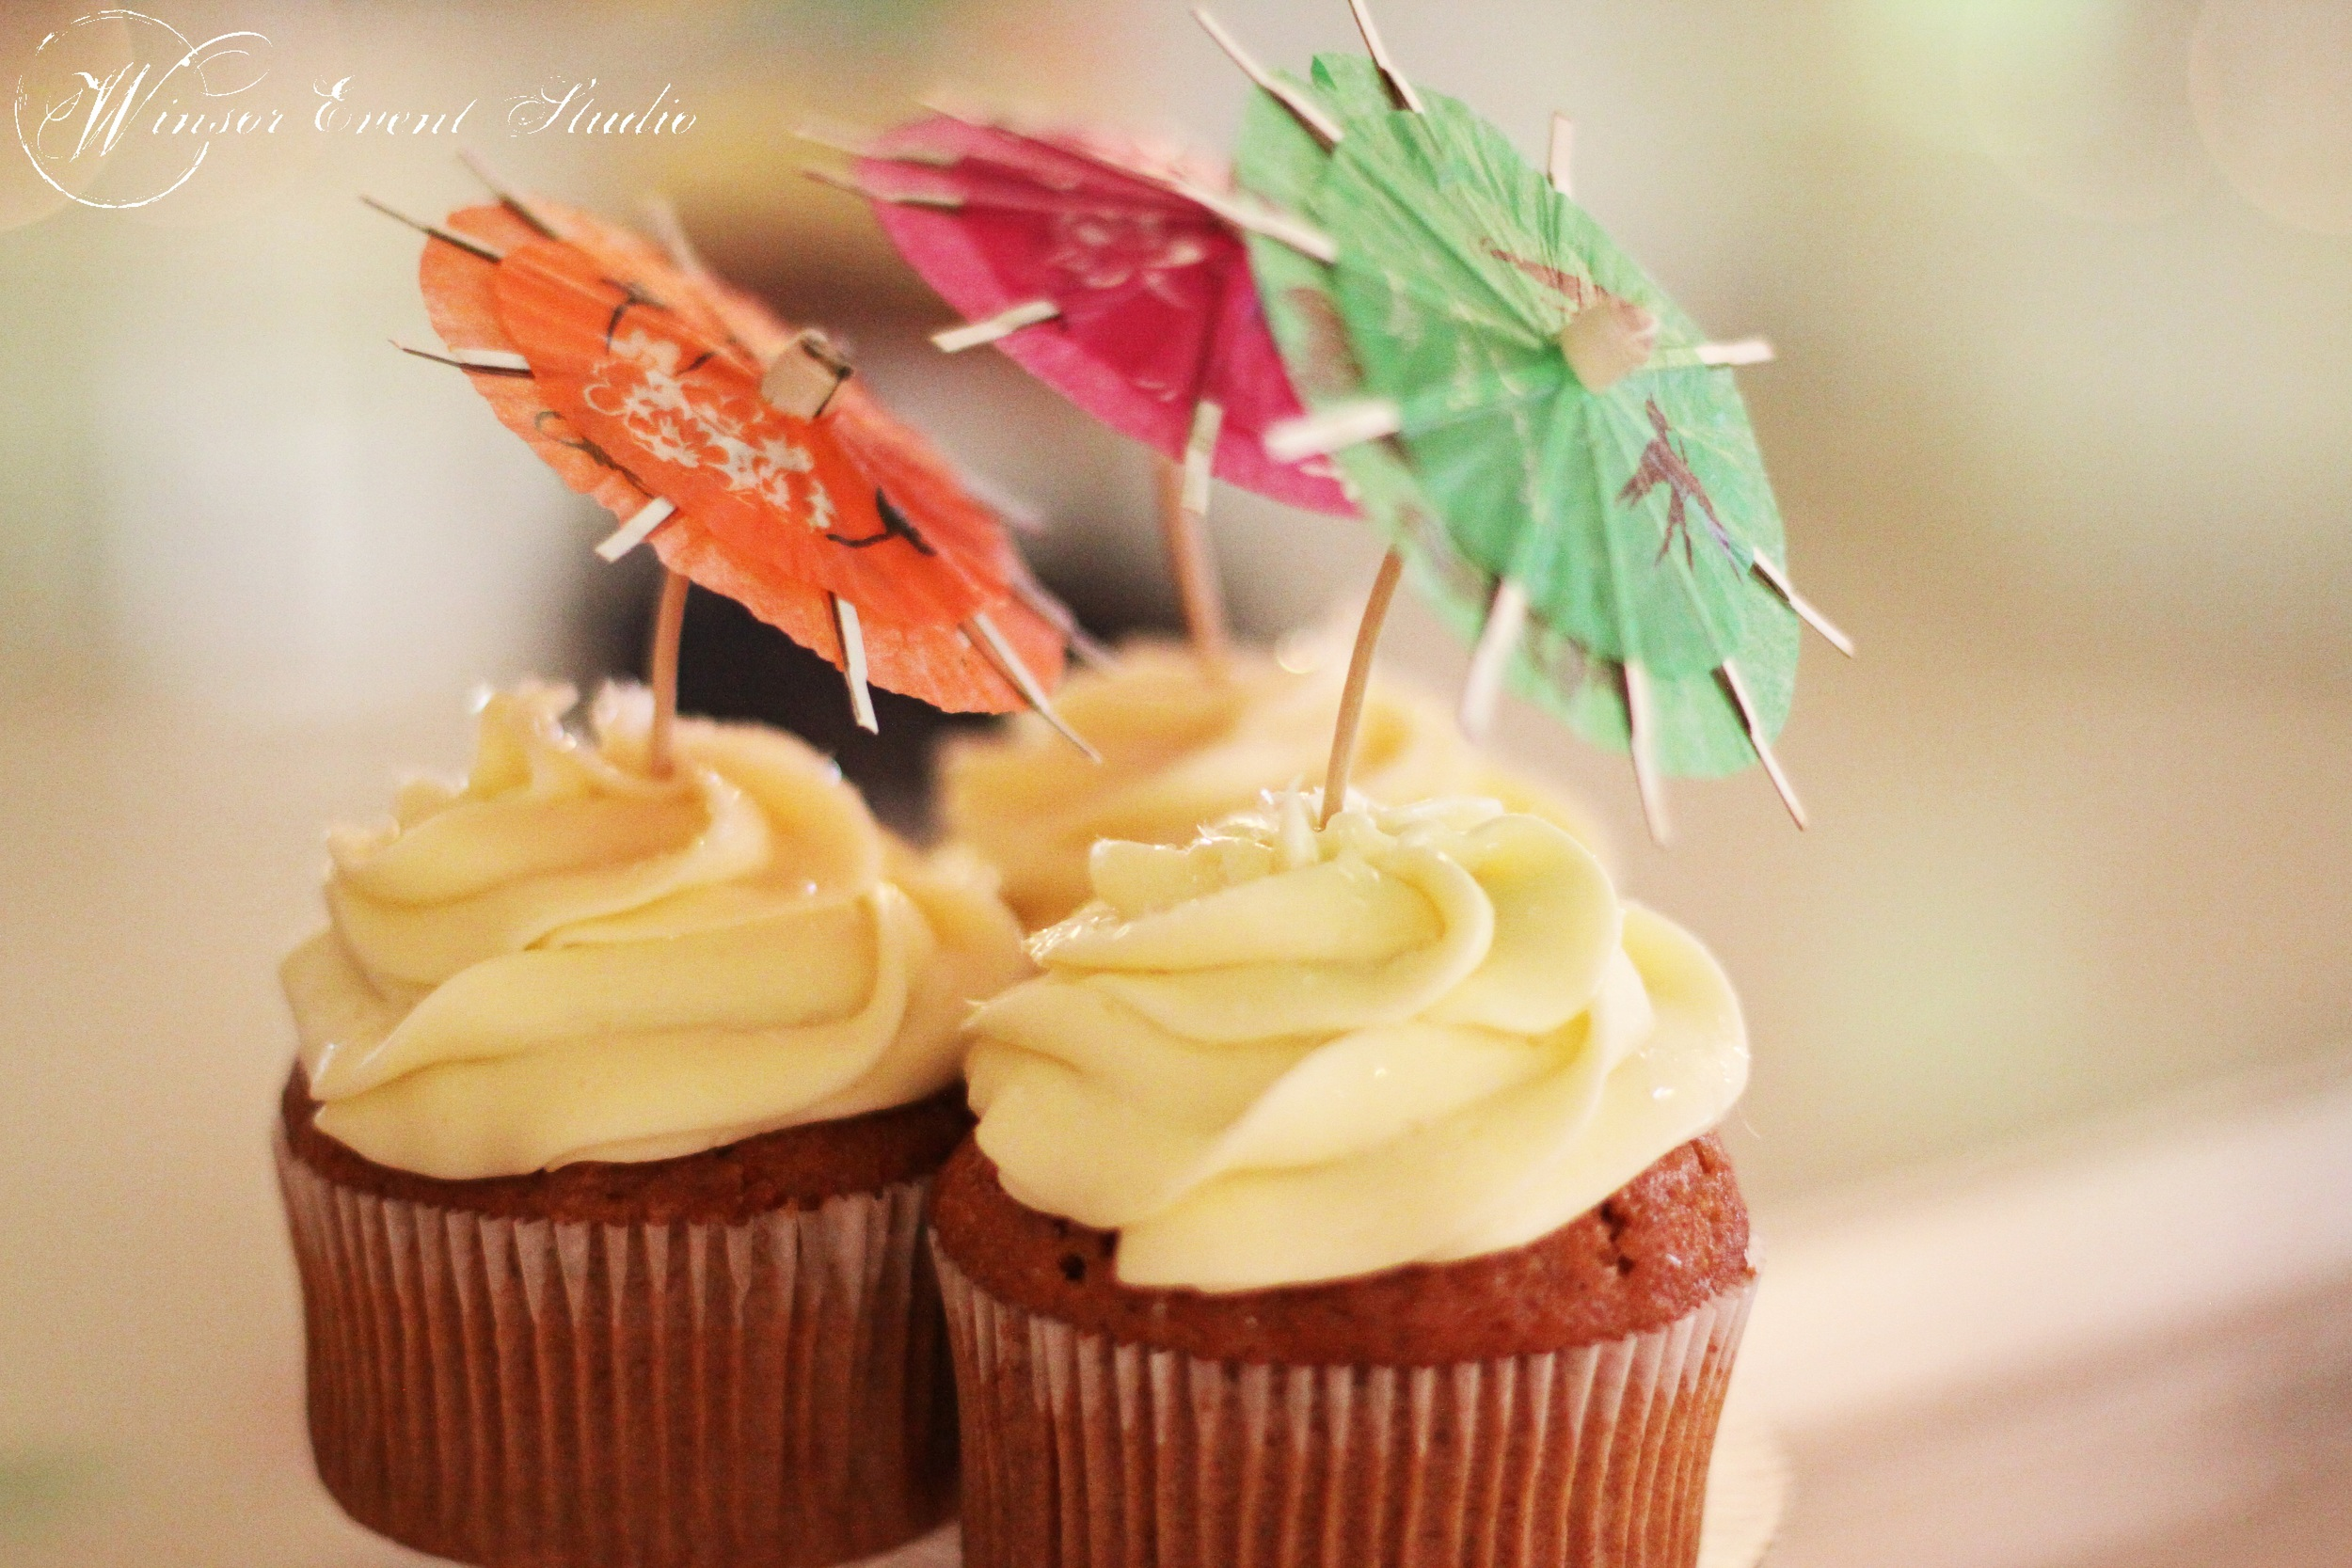 Red velvet cupcakes were accented with bright paper umbrellas to echo the tropical theme